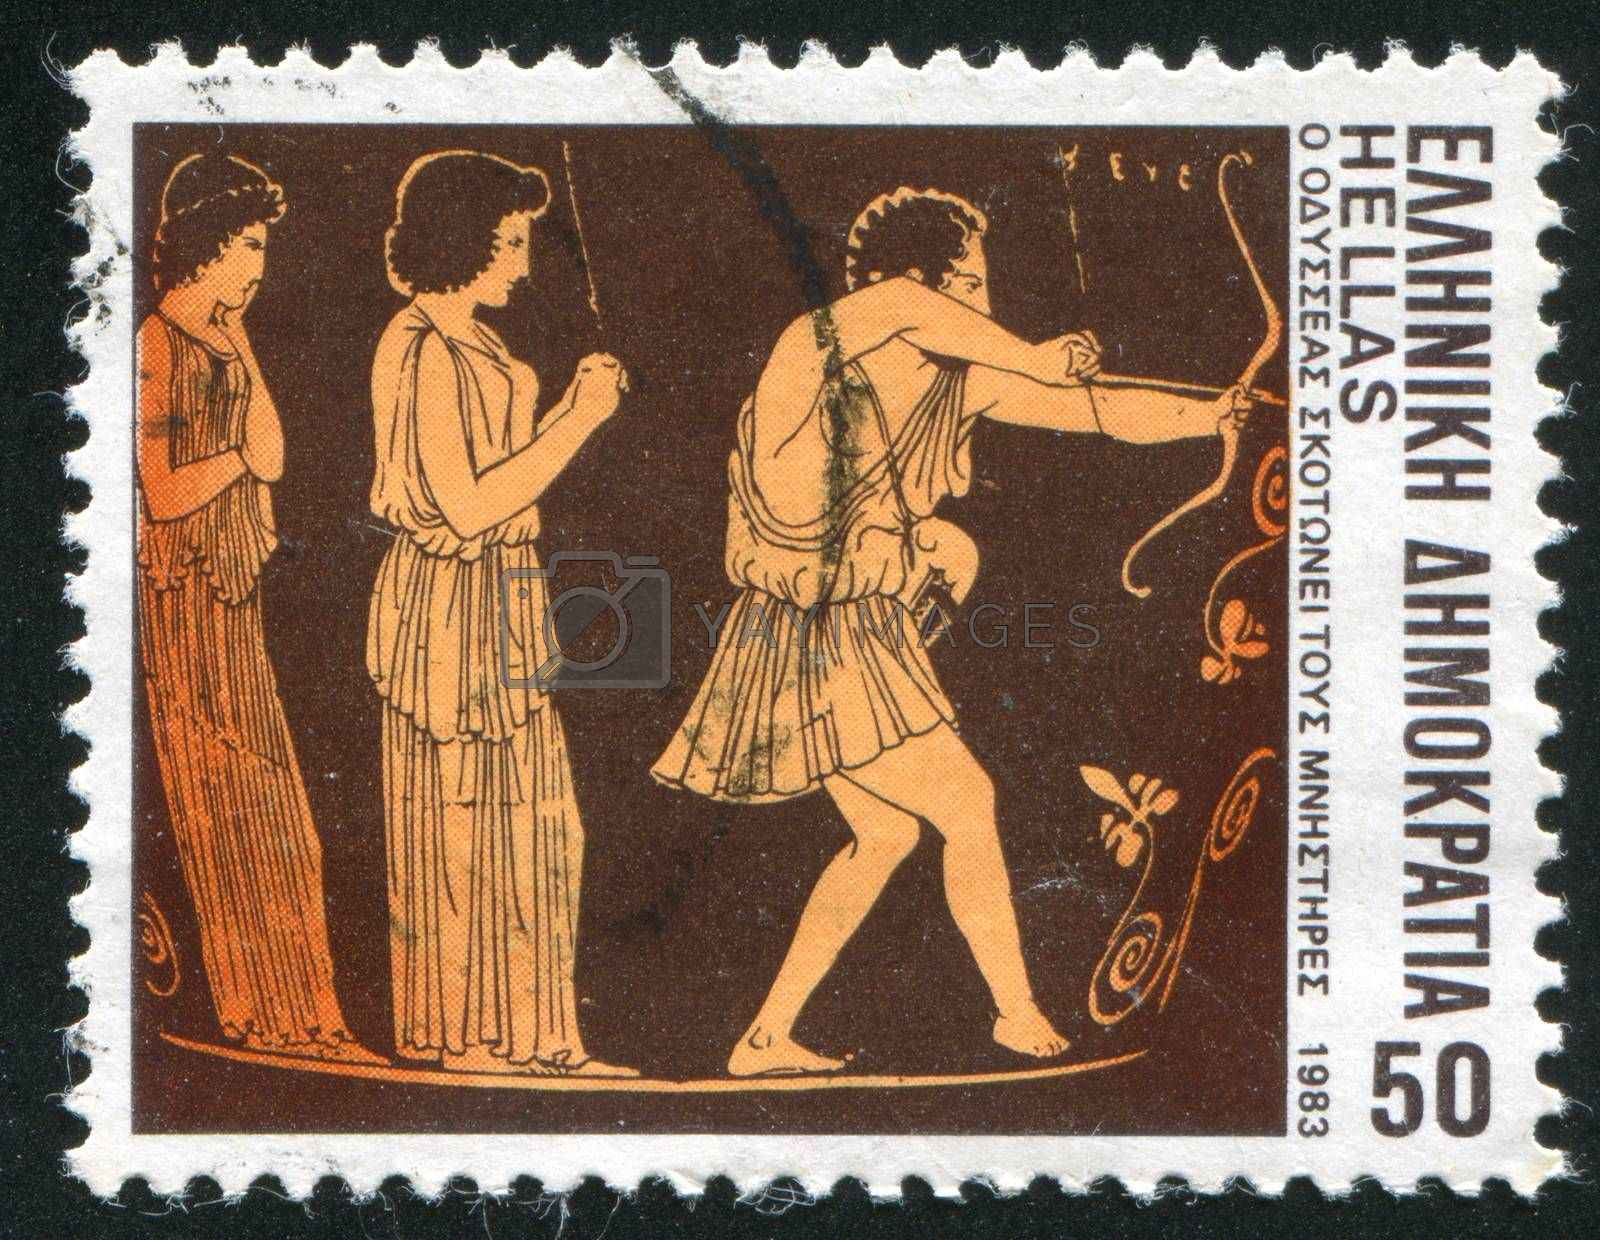 GREECE - CIRCA 1983: stamp printed by Greece, shows Ulysses slaying the suitors, circa 1983